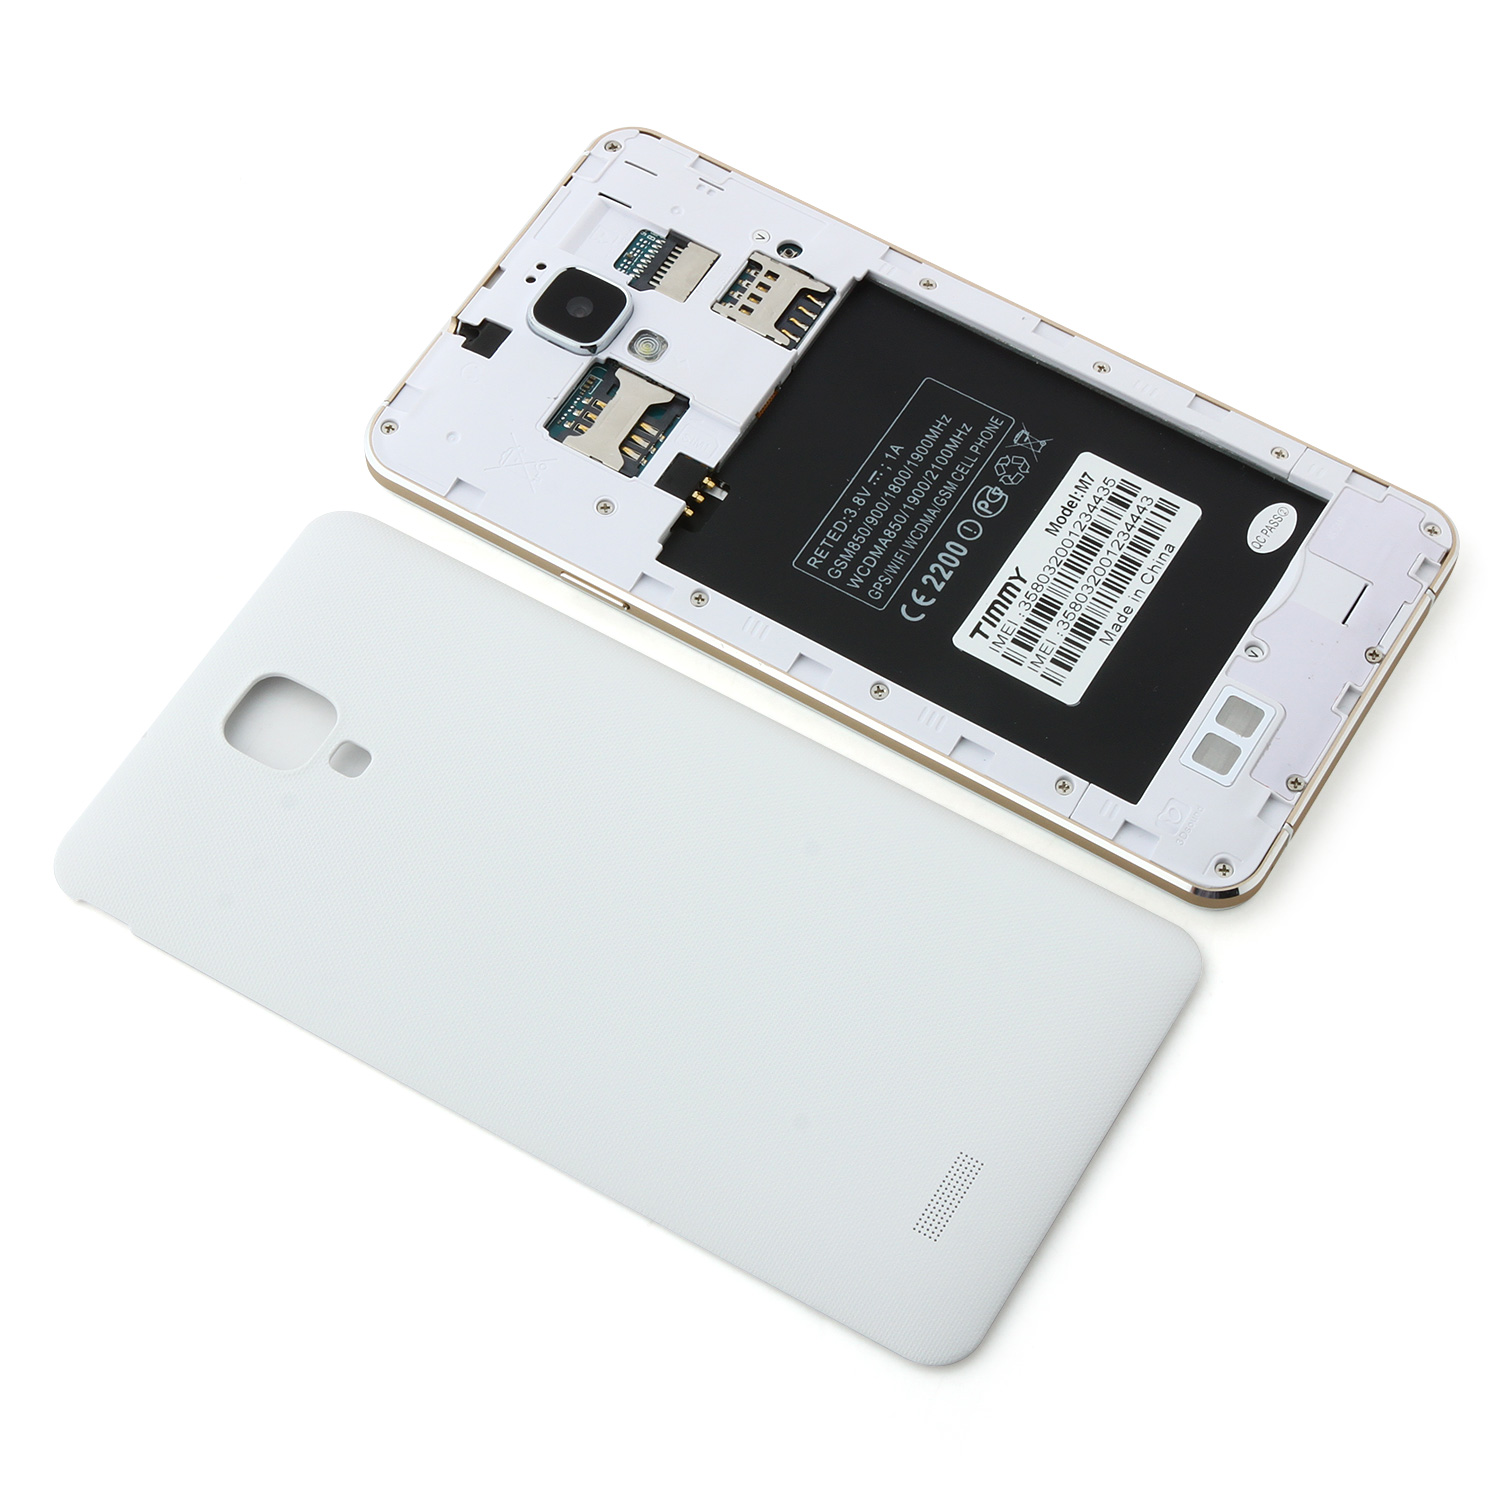 Timmy M7 Smartphone 5.5 inch HD Screen MTK6592M Octa Core 1GB 8GB Android 4.4 White